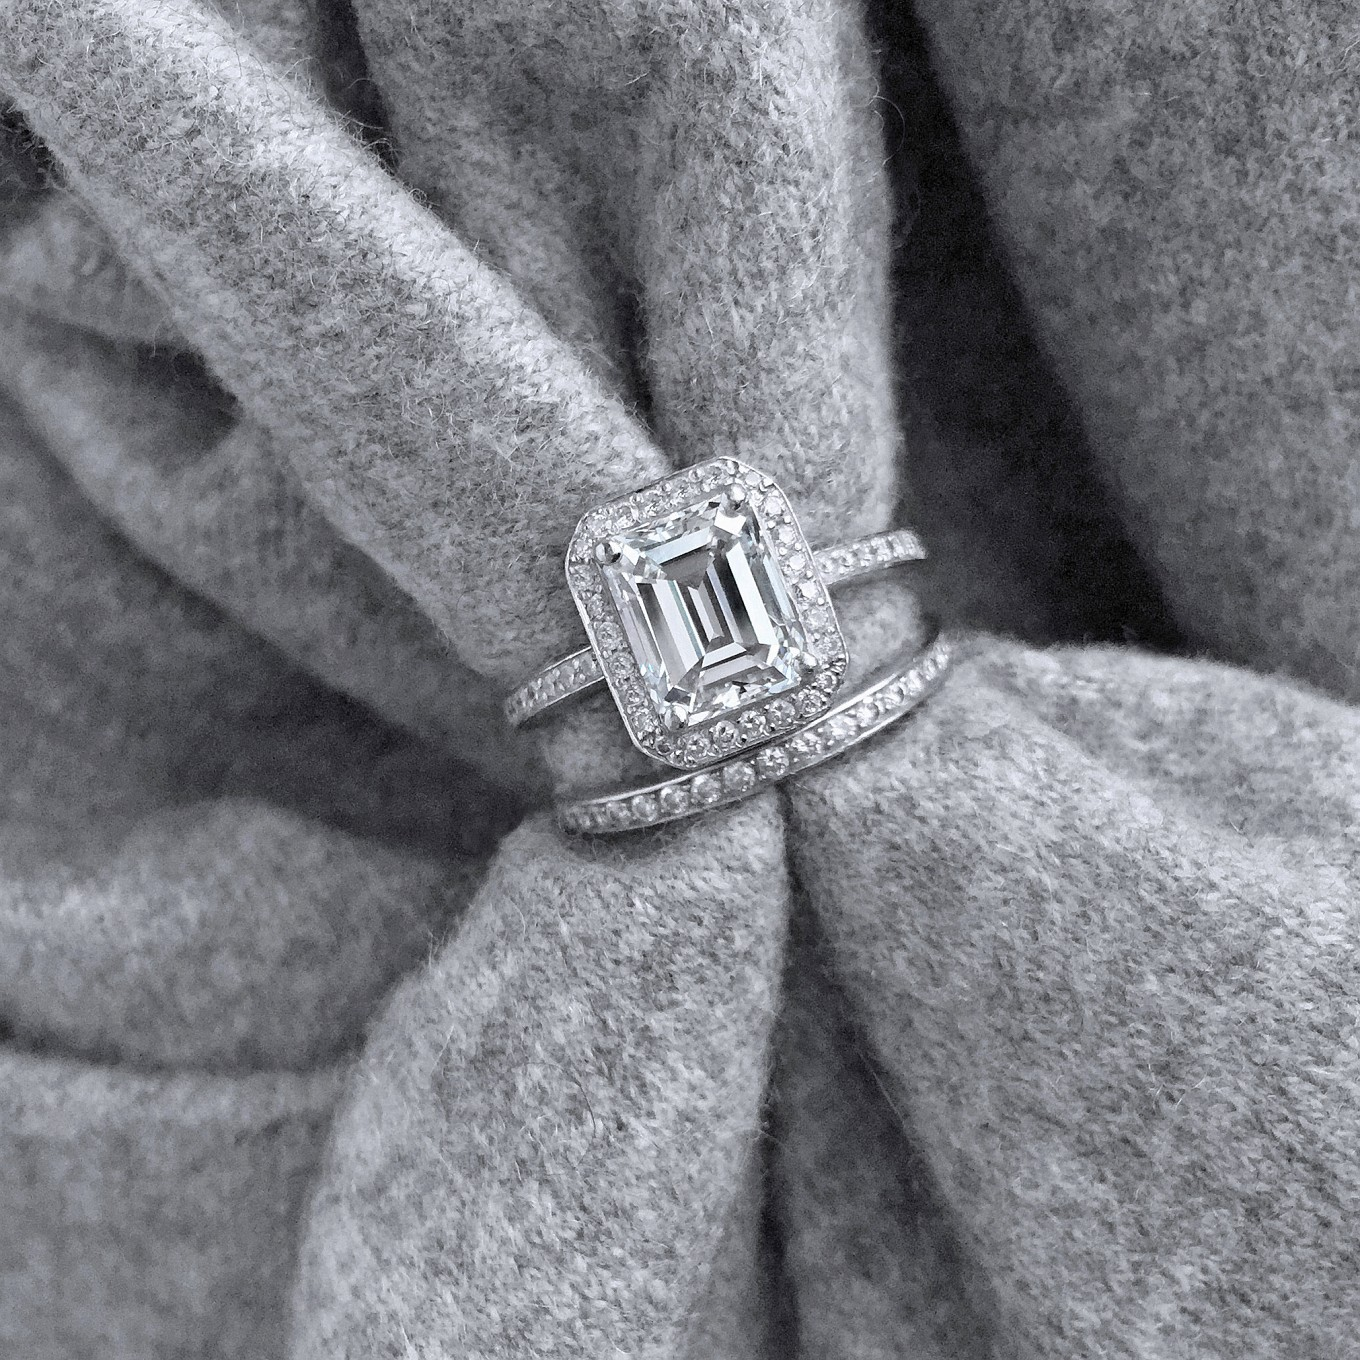 D COLOUR EMERALD CUT DIAMOND RING IN WHITE GOLD PRICE ON REQUEST<br/><br/>DIAMOND ETERNITY BAND